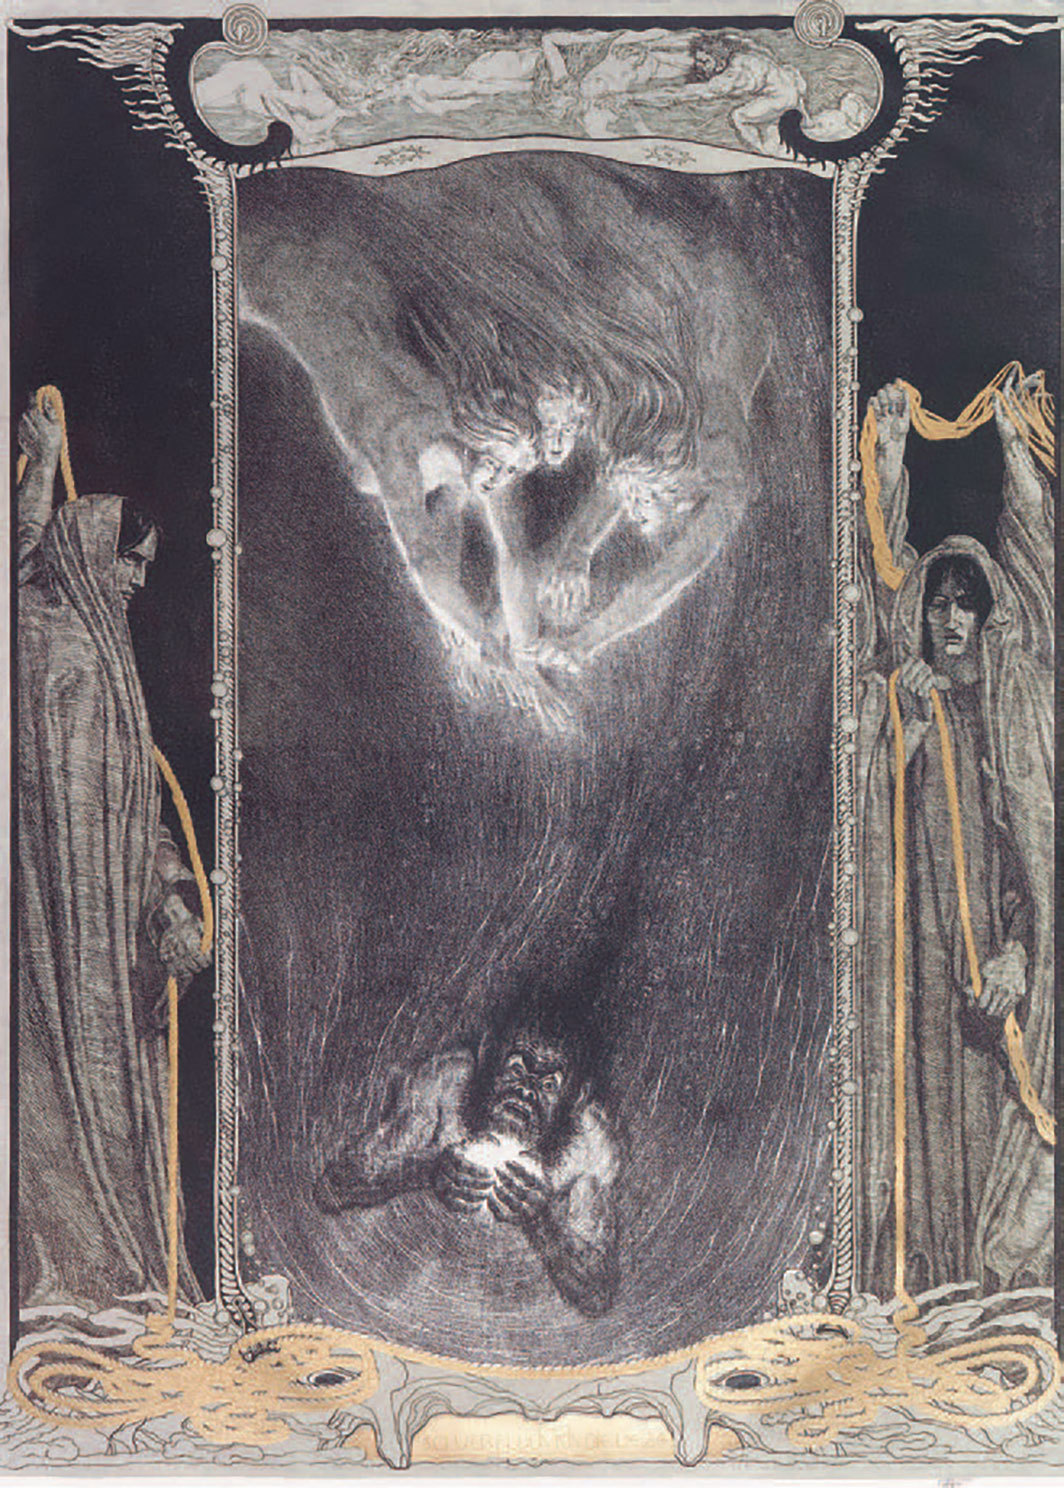 *Franz Stassen illustration from 1916 depicting Richard Wagner's _Der Ring des Nibelungen_ (The Ring of the Nibelung), 1848–74.* From Part 1: _Das Rheingold_  (The Rhinegold).